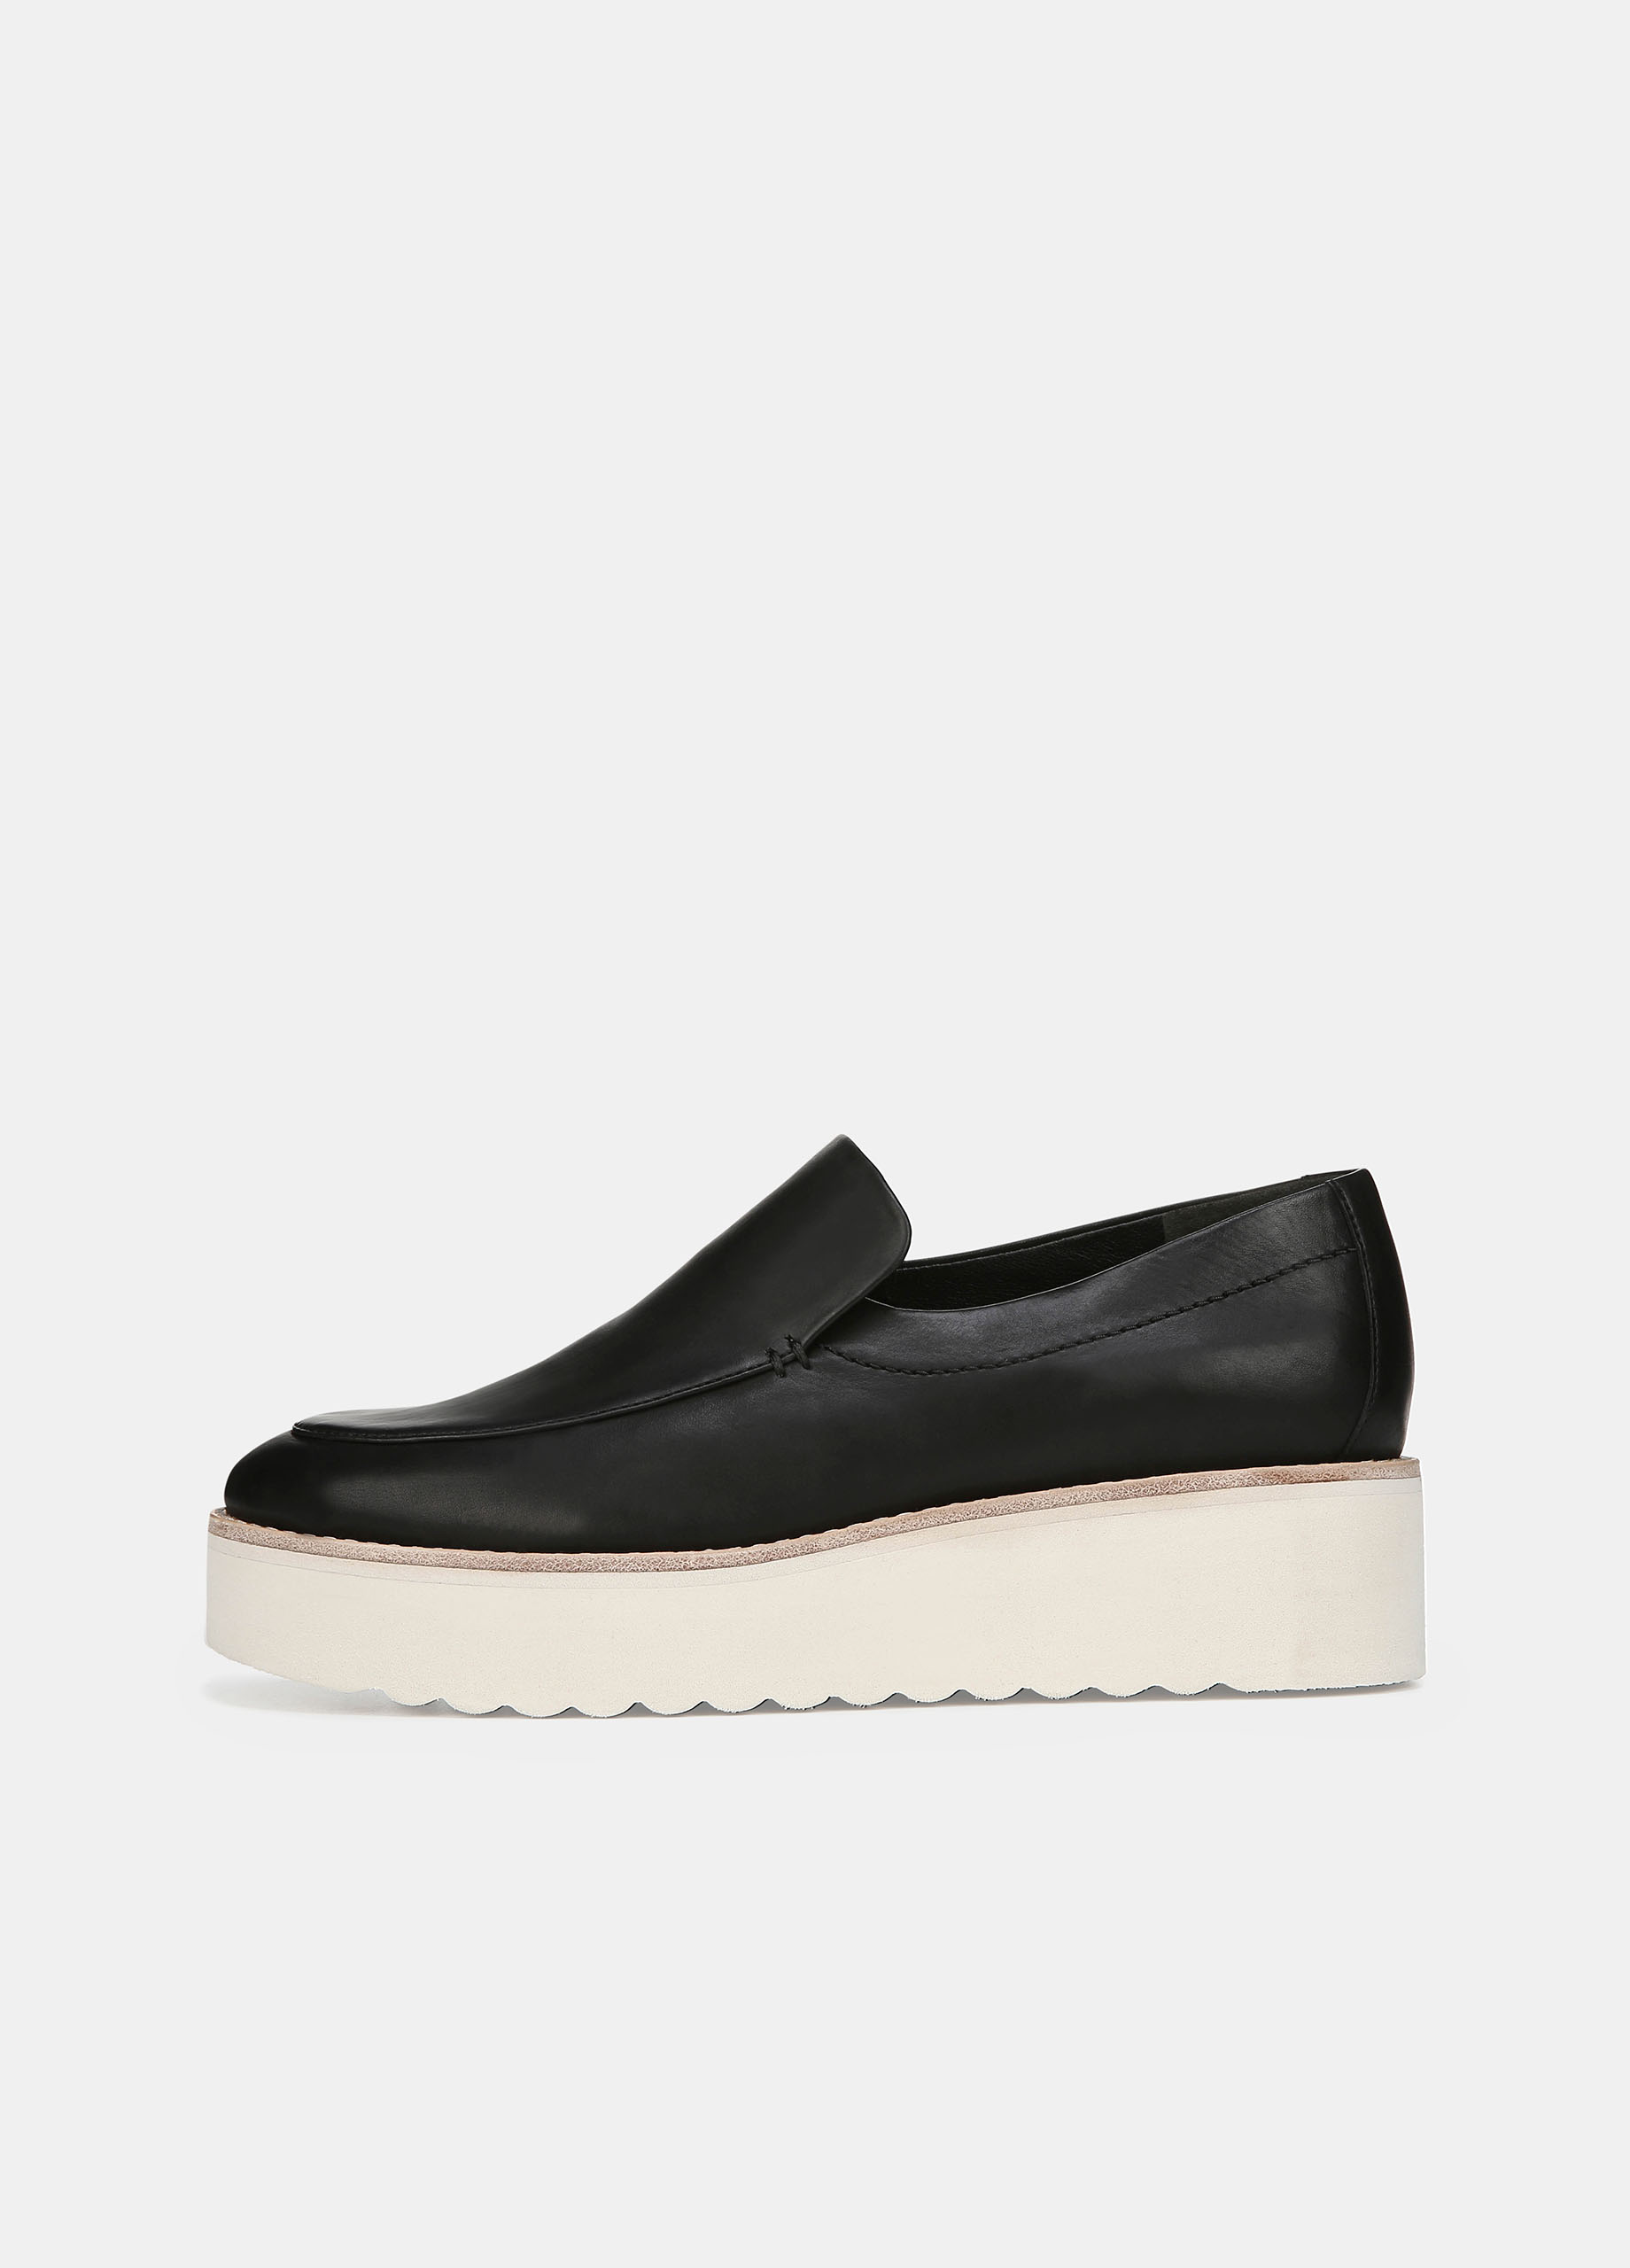 Leather Zeta Platform Loafer by Vince